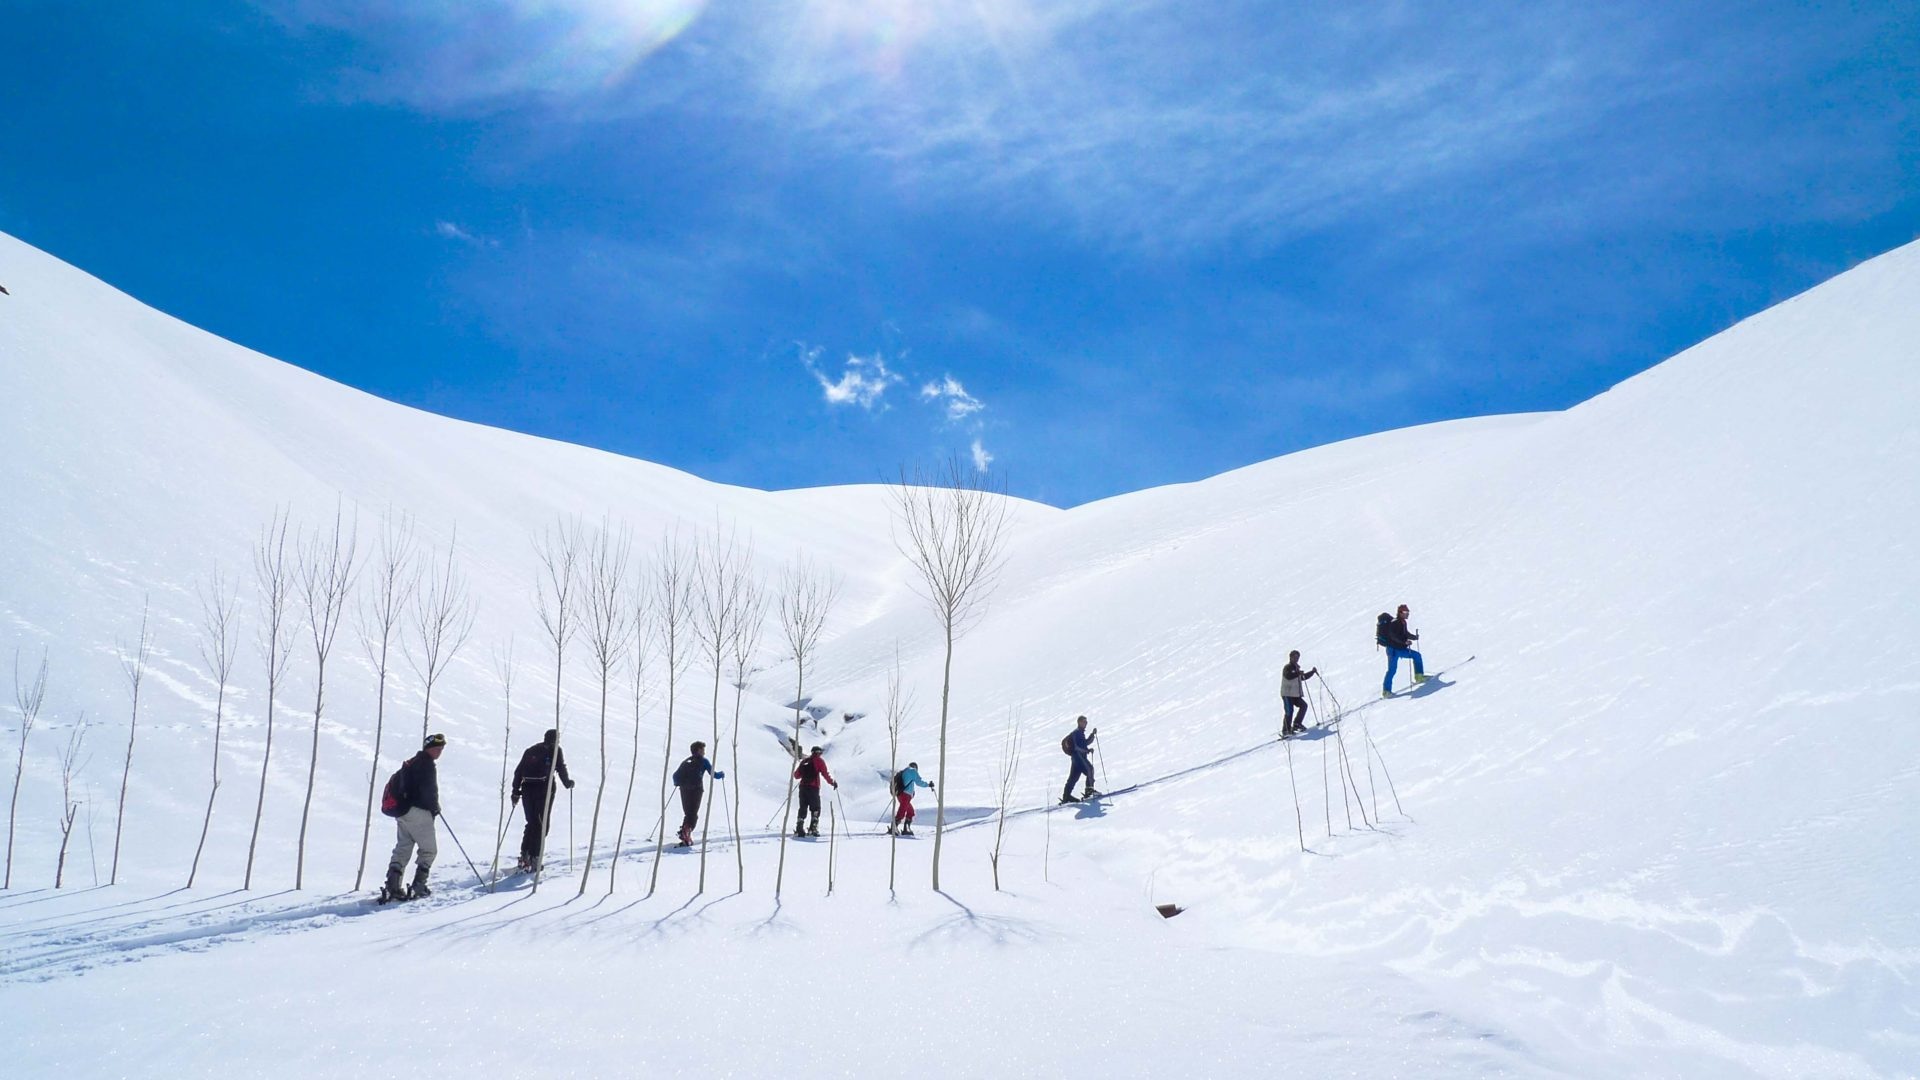 With chairlifts not an option at the Afghan Ski Challenge, competitors make the arduous journey by foot up the mountains.